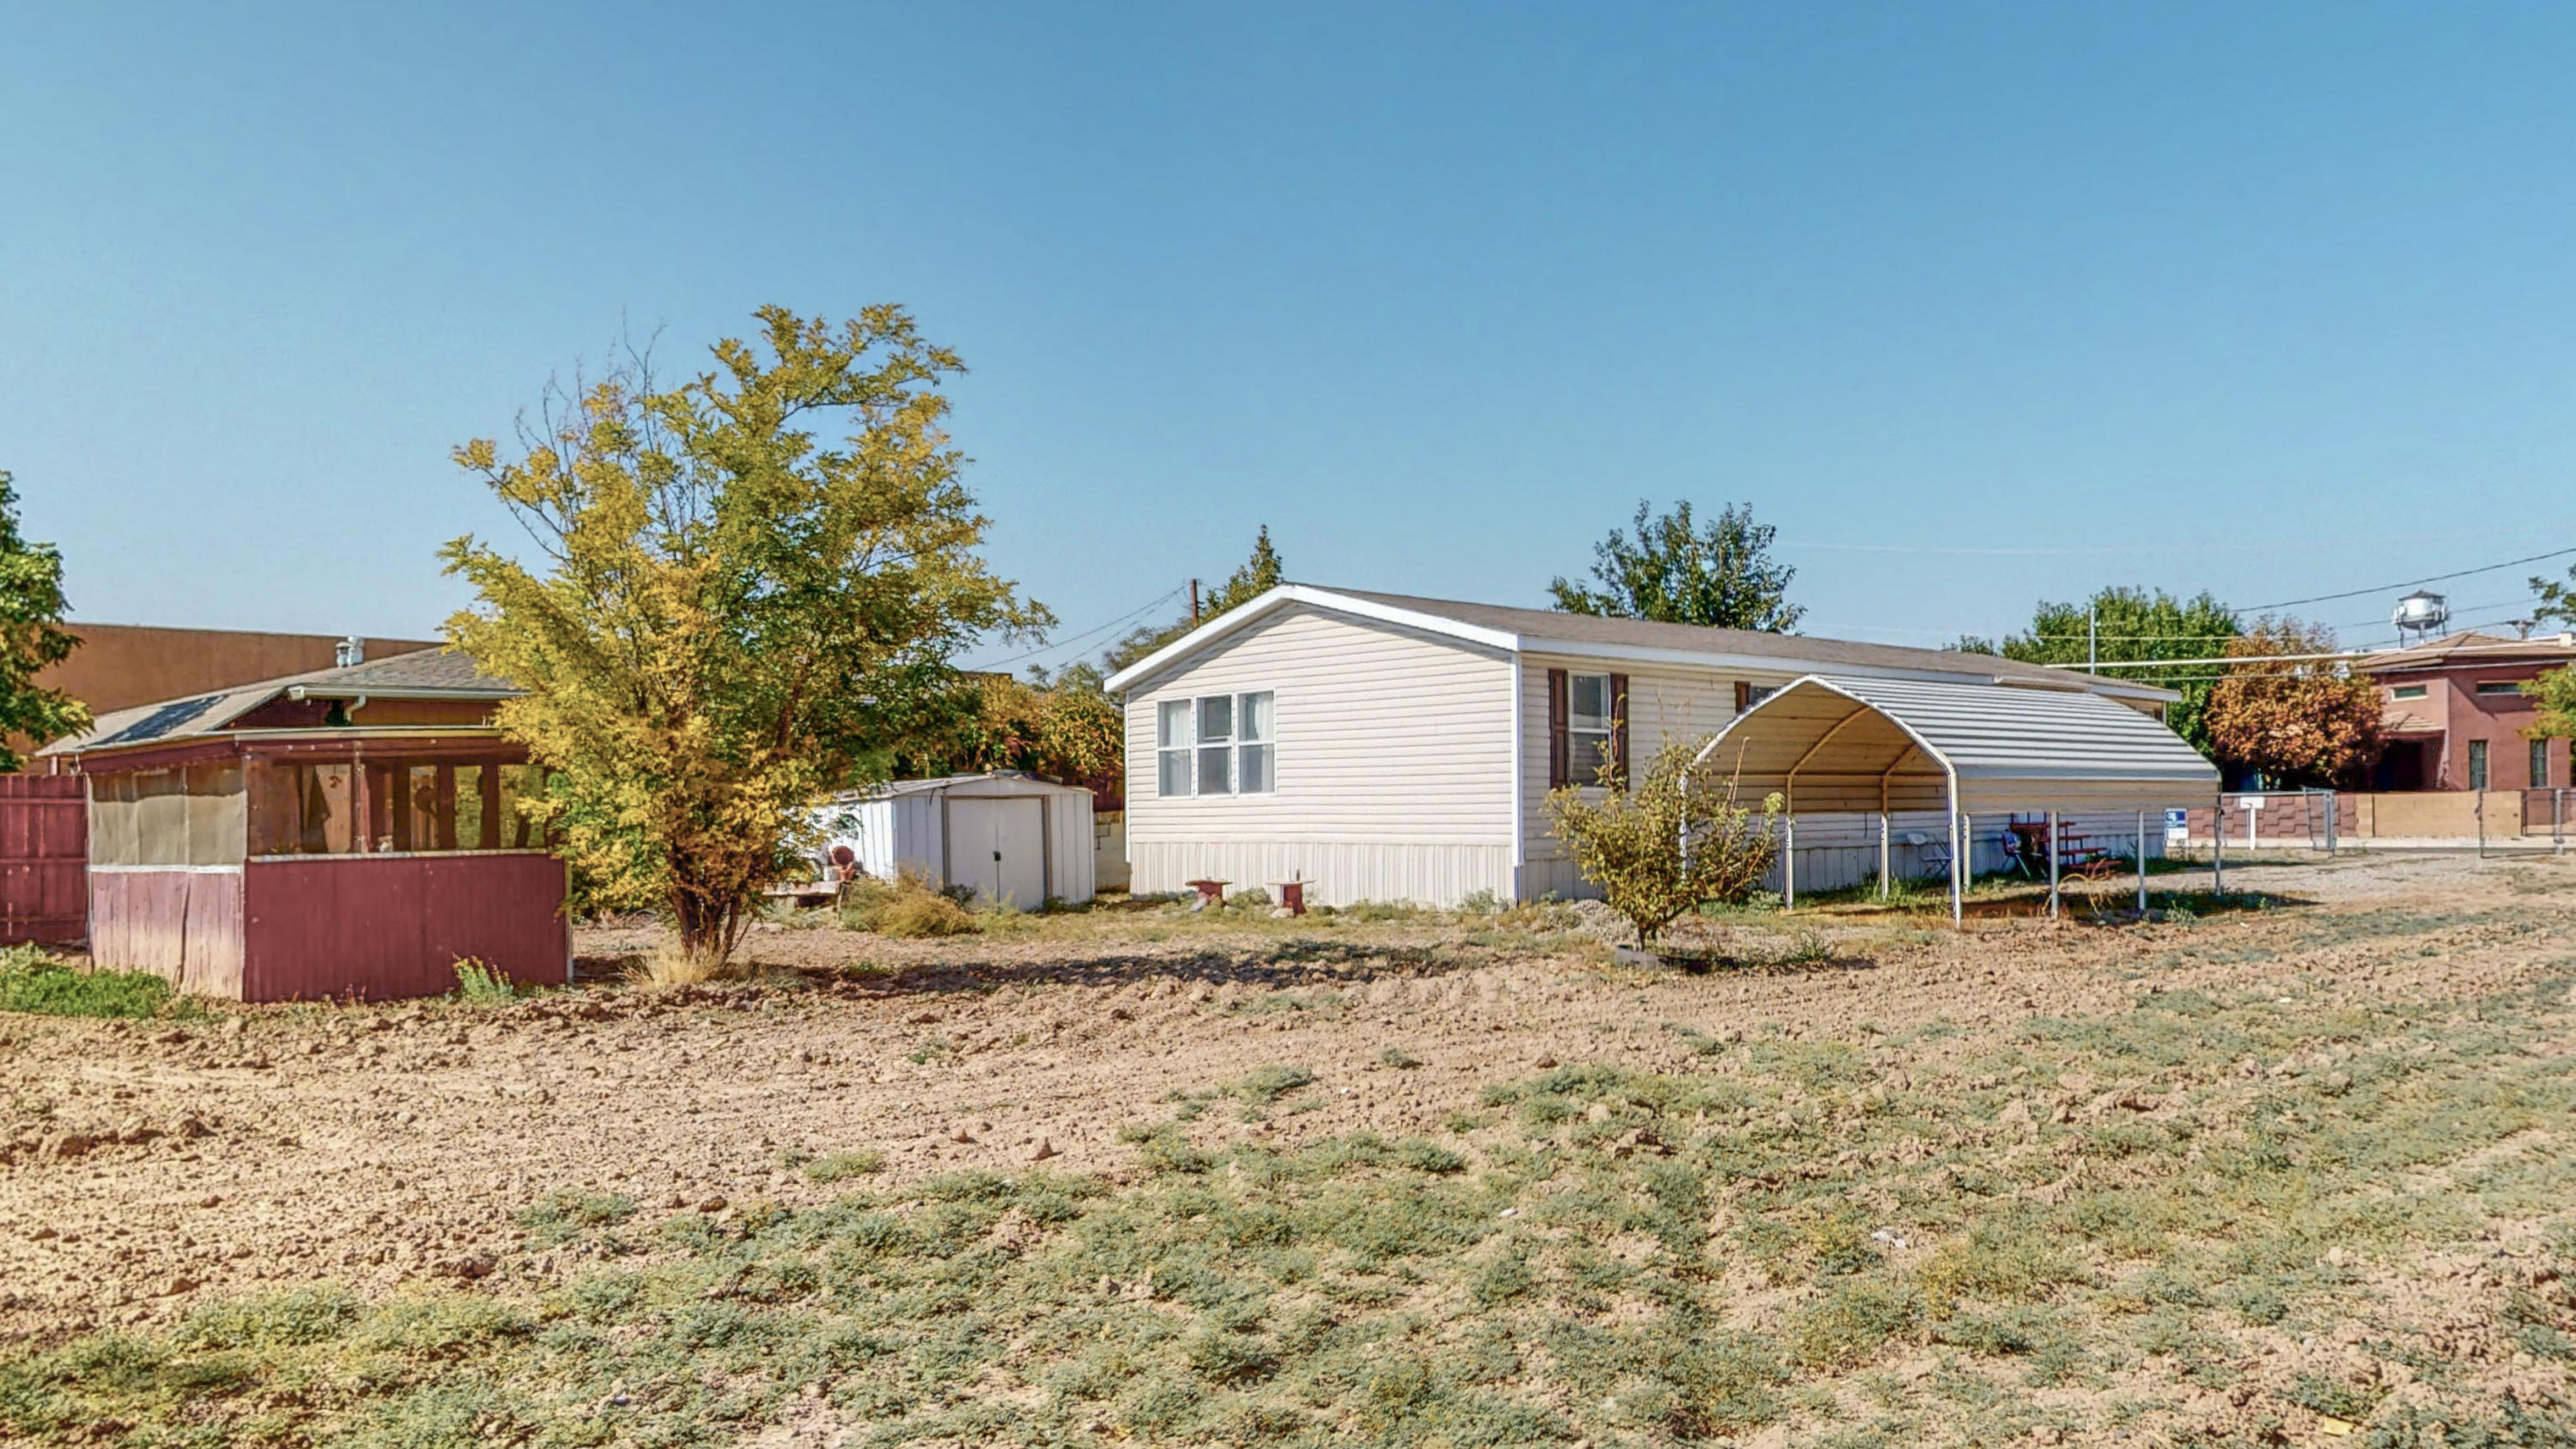 .40 Acres! Backyard Access! Grapes! Apple Tree! Carport! Garden Tub! Bonus Room/2nd Living Area! All appliances convey! See attached documents! Professional photos coming soon!